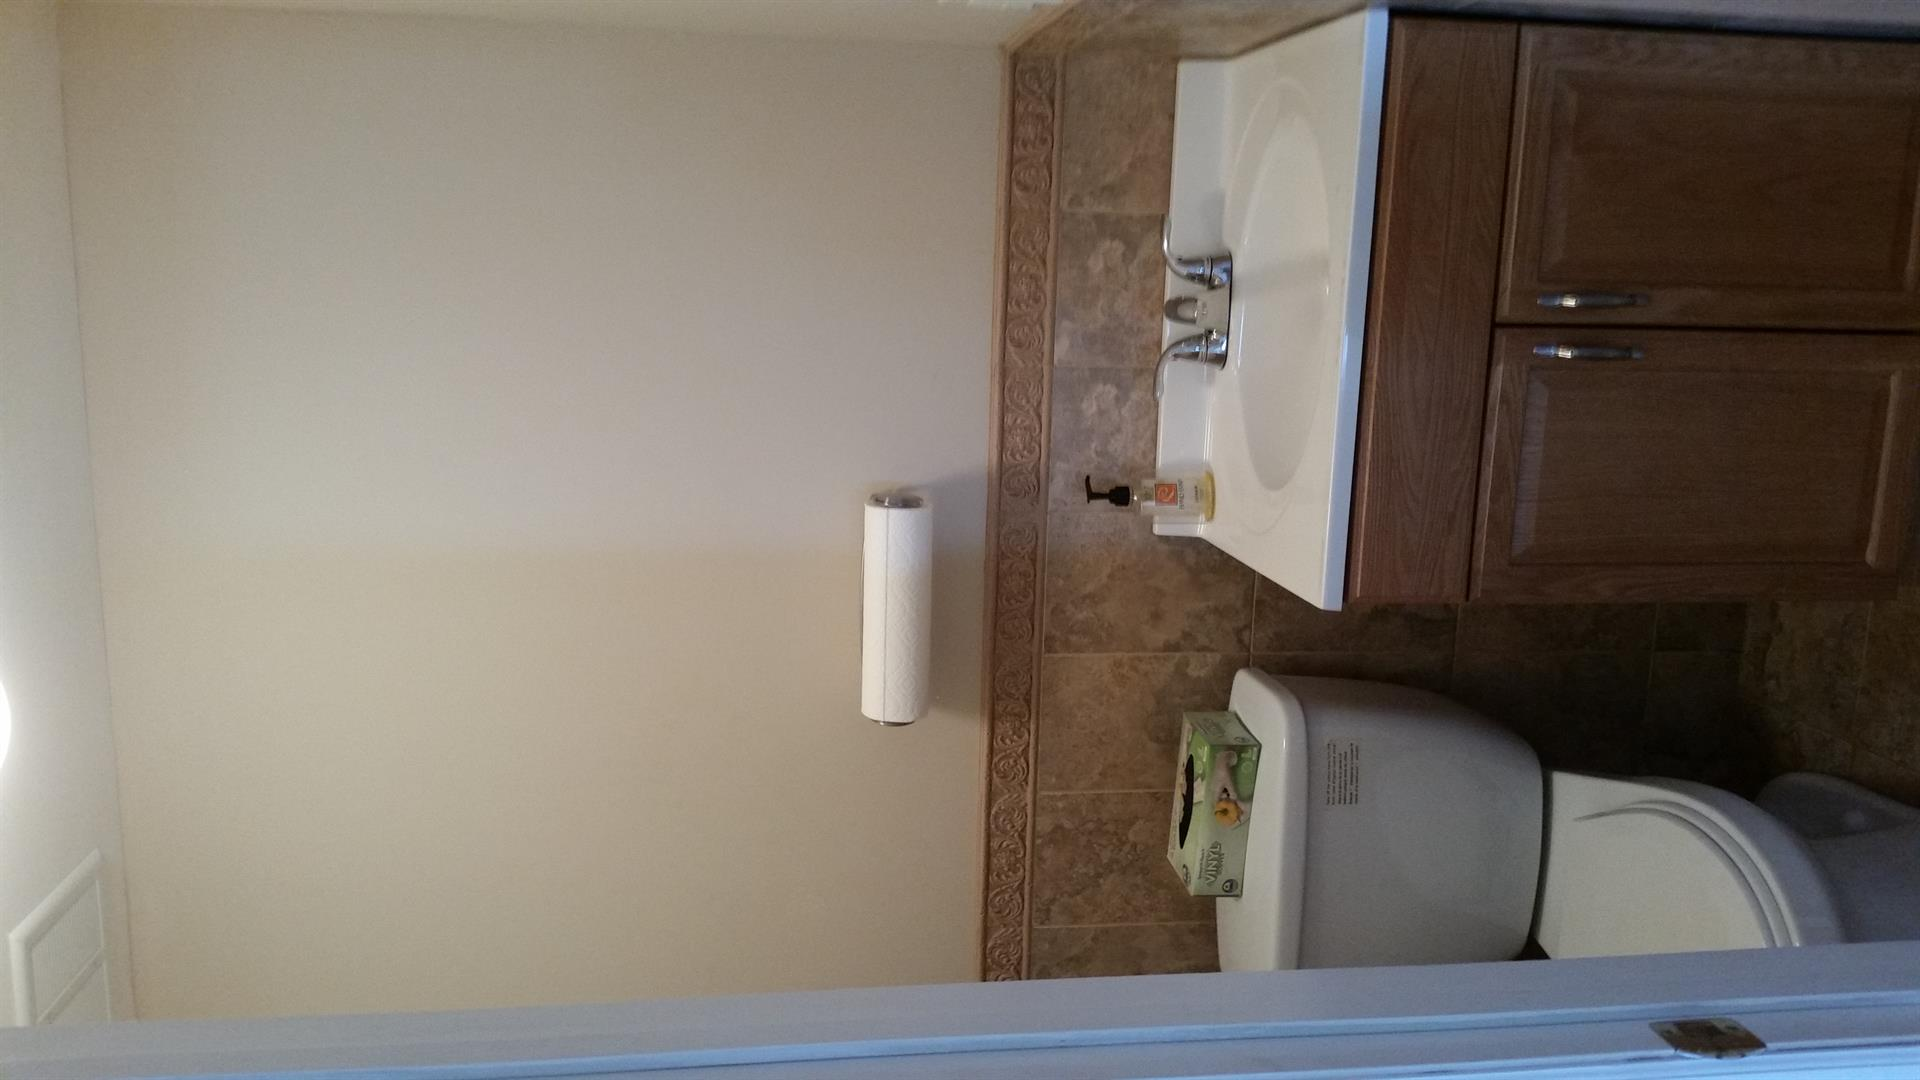 Additional photo for property listing at 315 Ave W  Brooklyn, New York 11223 United States